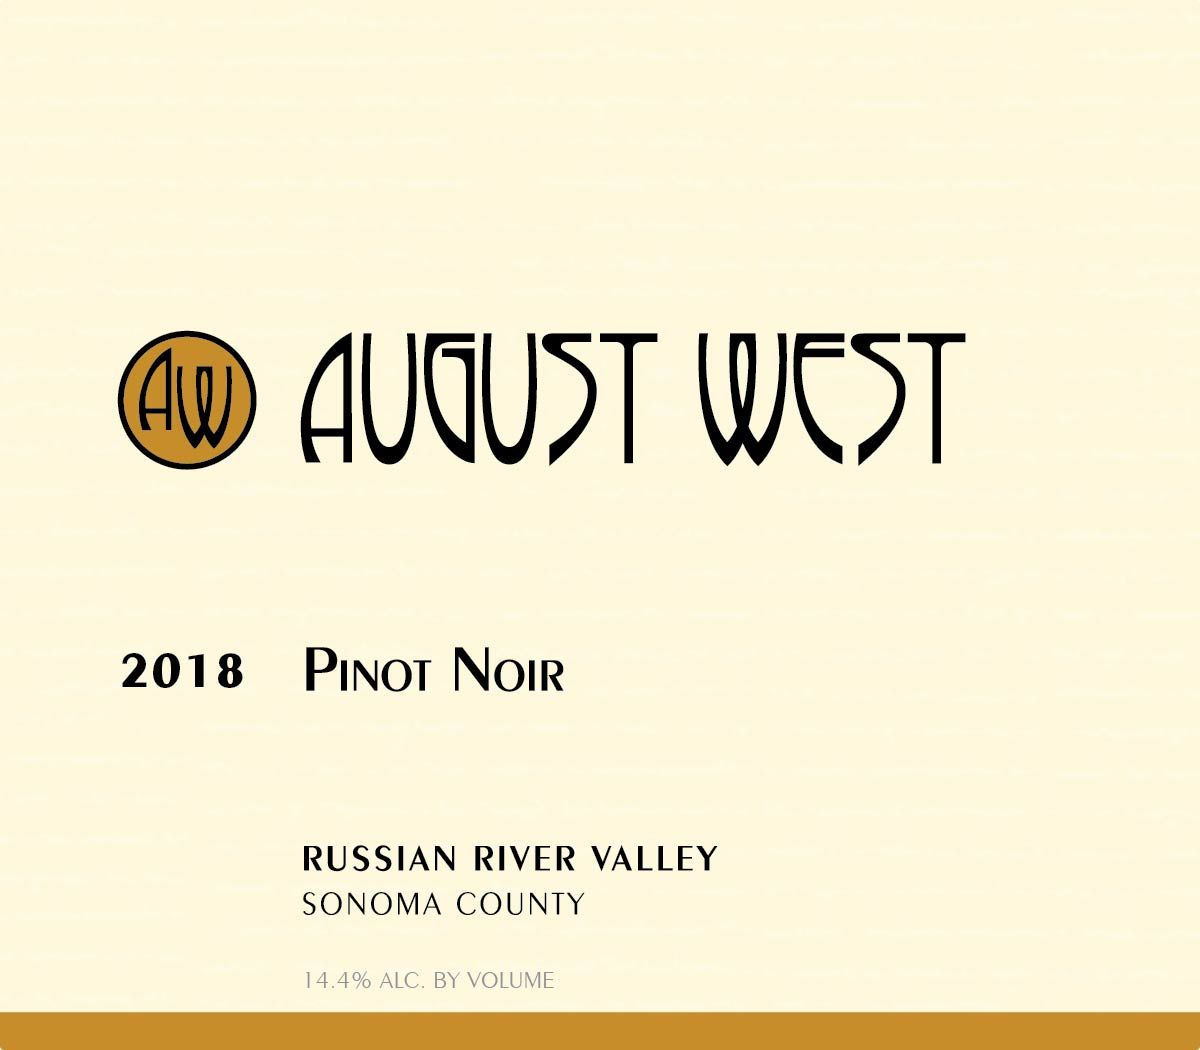 August West Russian River Valley Pinot Noir 2018  Front Label